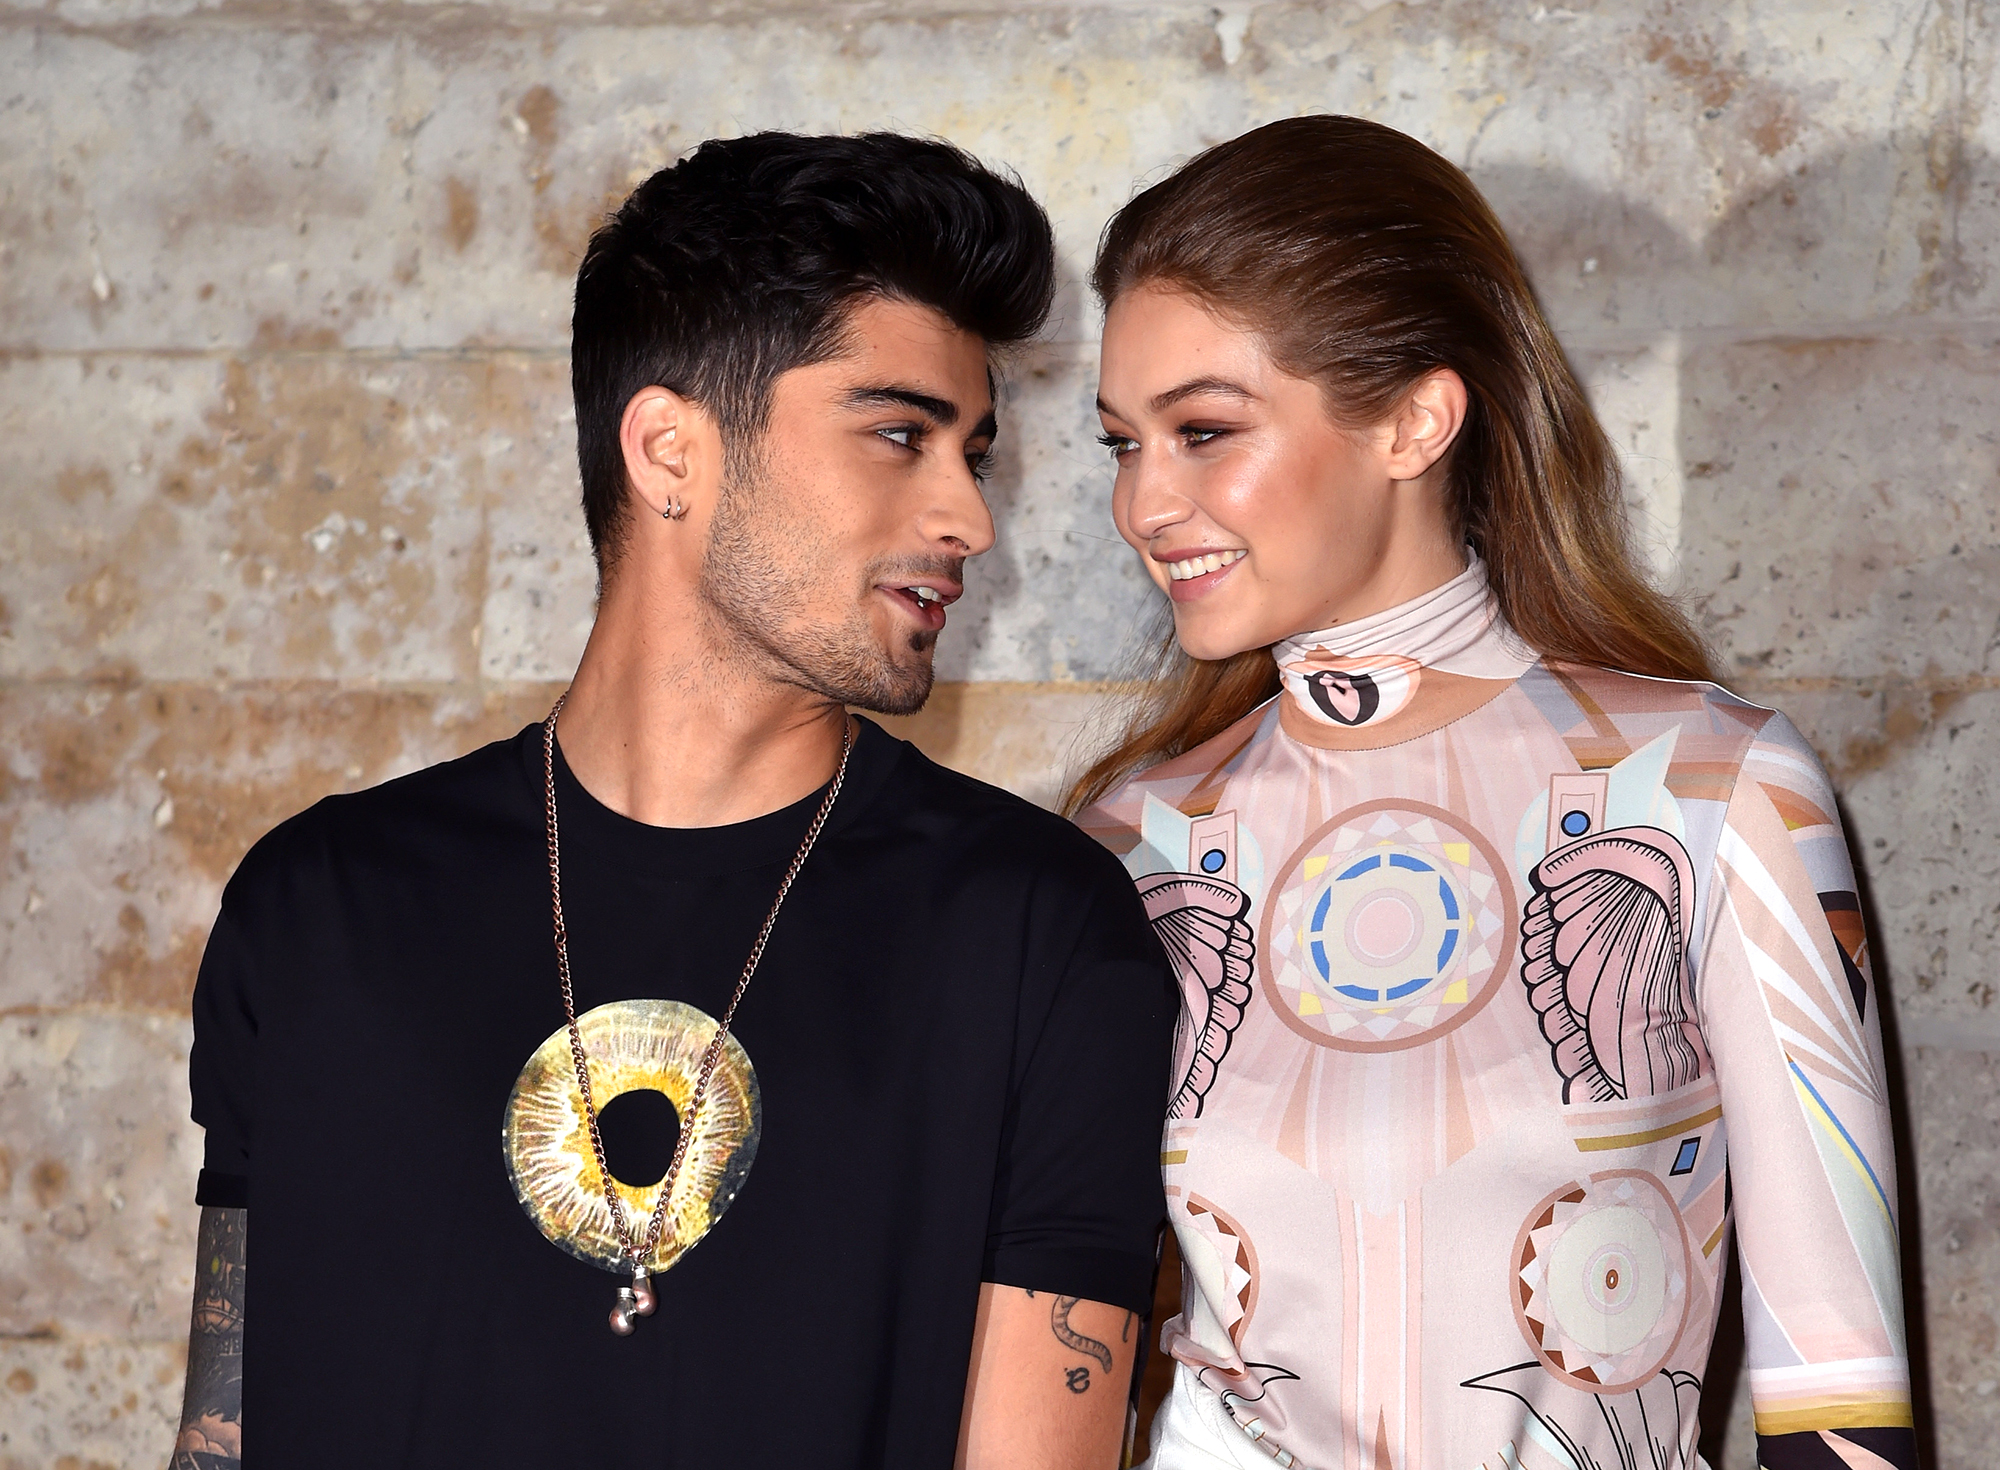 Back Together? Gigi Hadid & Zayn Malik Caught Kissing After Their Split